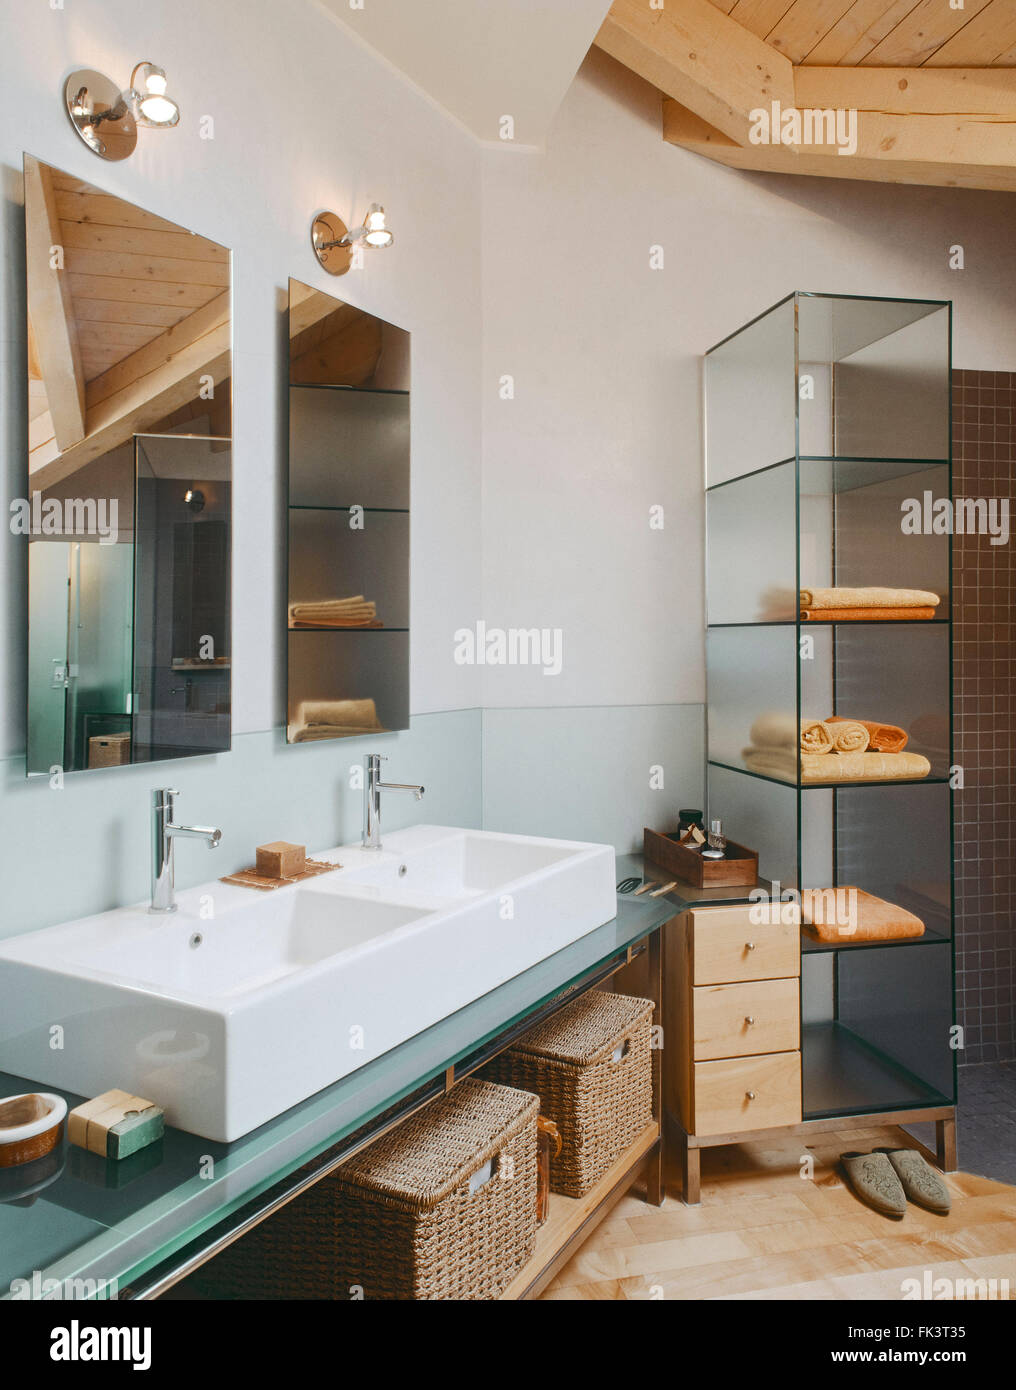 interior view of a modern bathroom in the attic room in foreground two washbasin - Stock Image